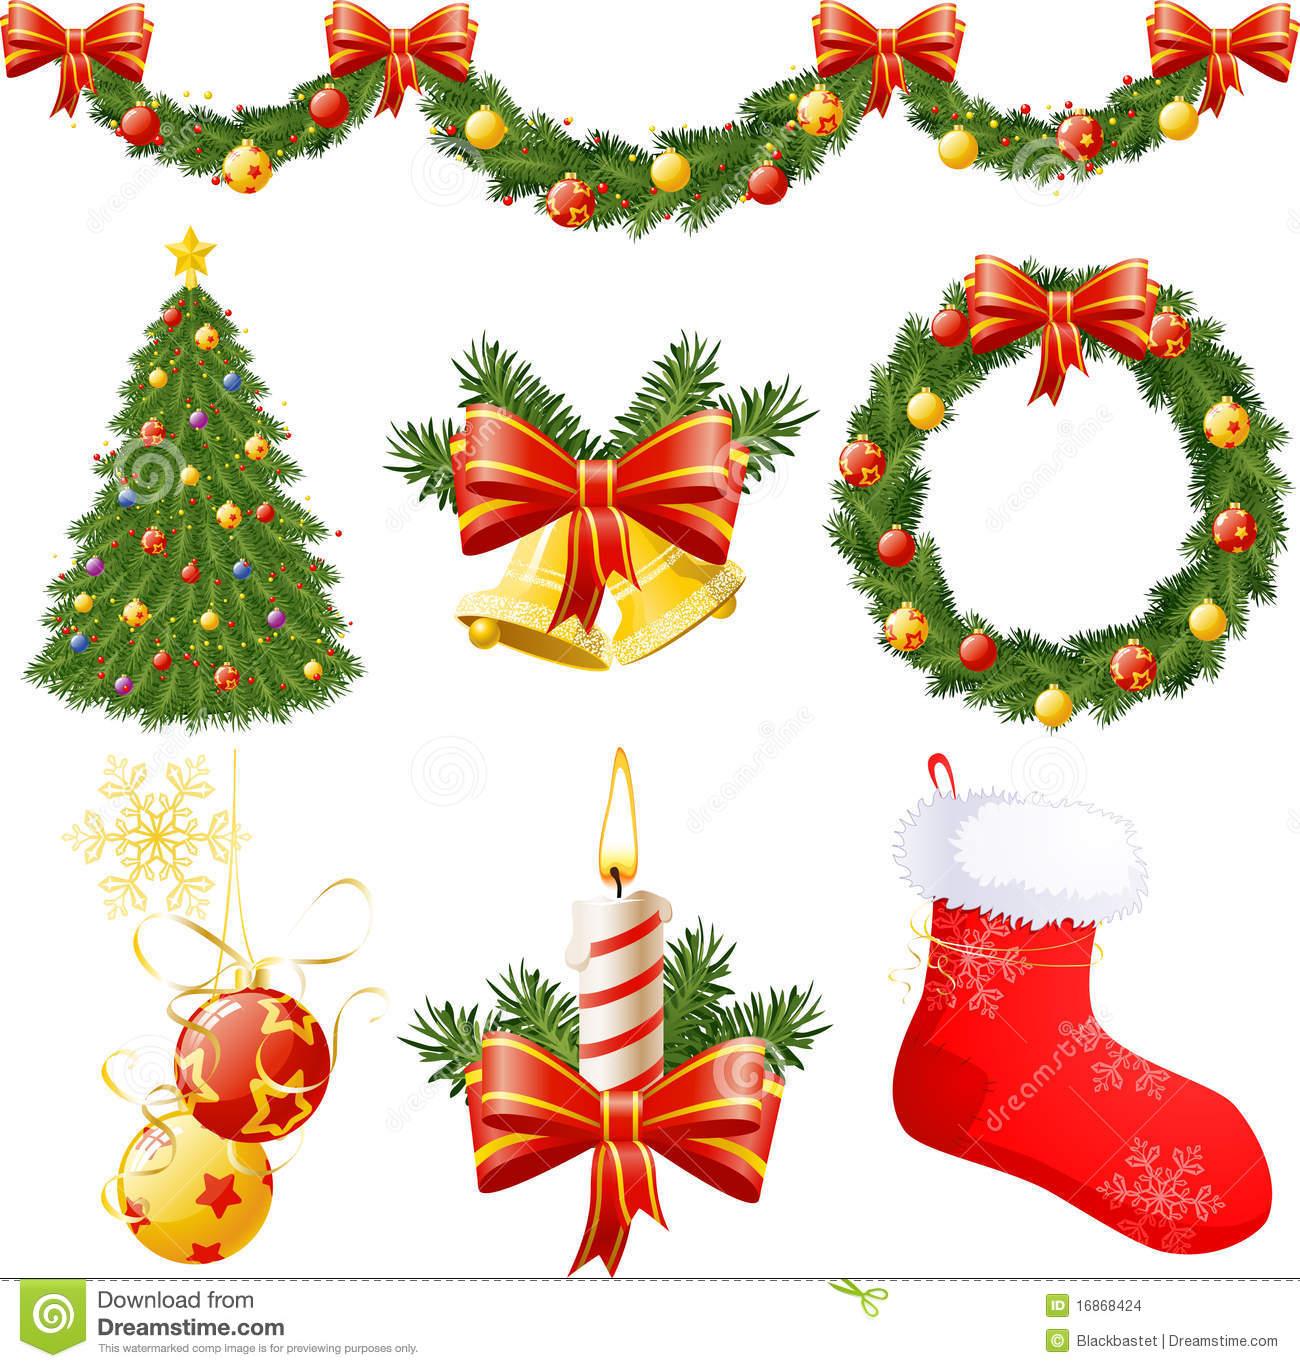 Christmas decorations stock vector illustration of tree for Christmas decorations images